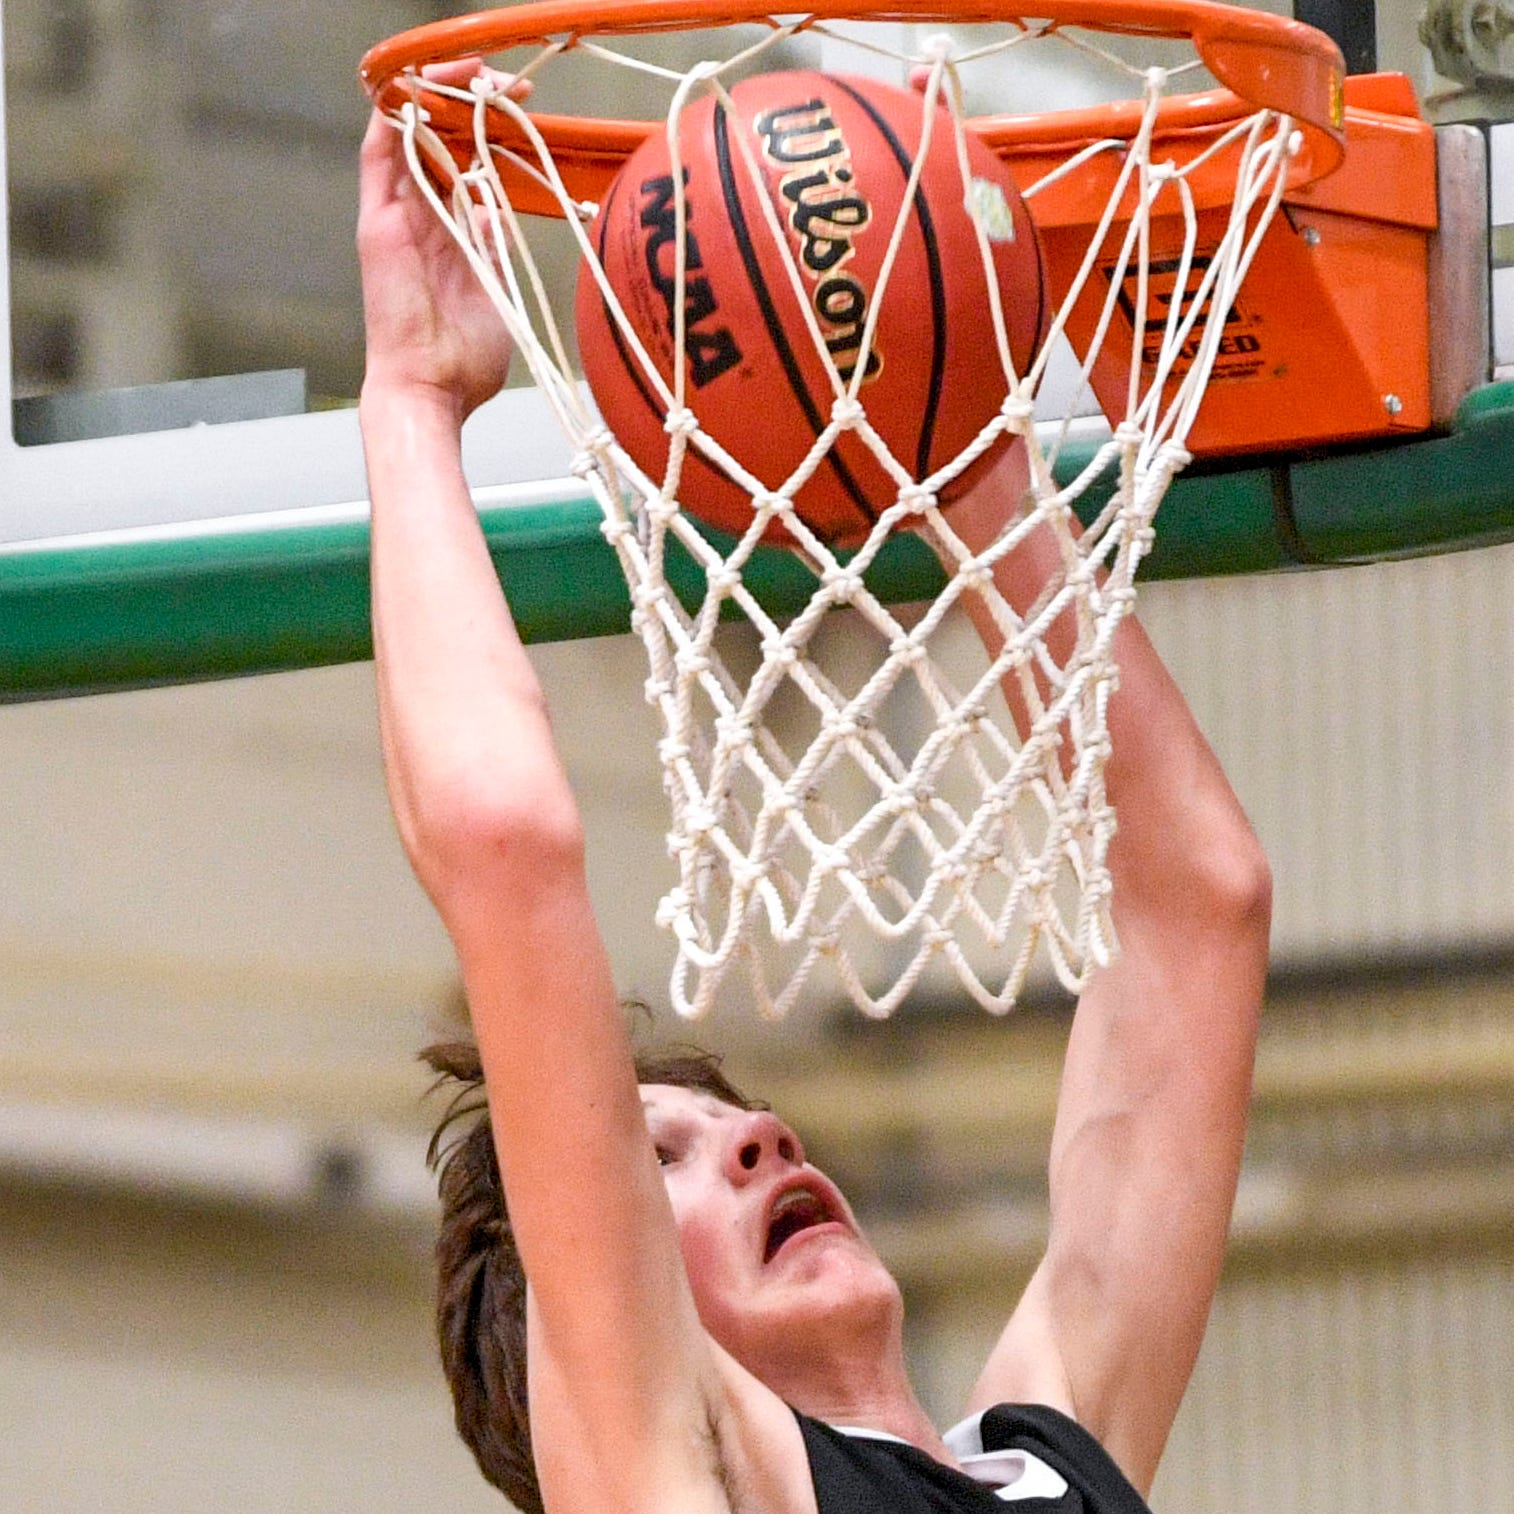 Mason Hanback, South Side's 6-foot-10 freshman, shows big potential